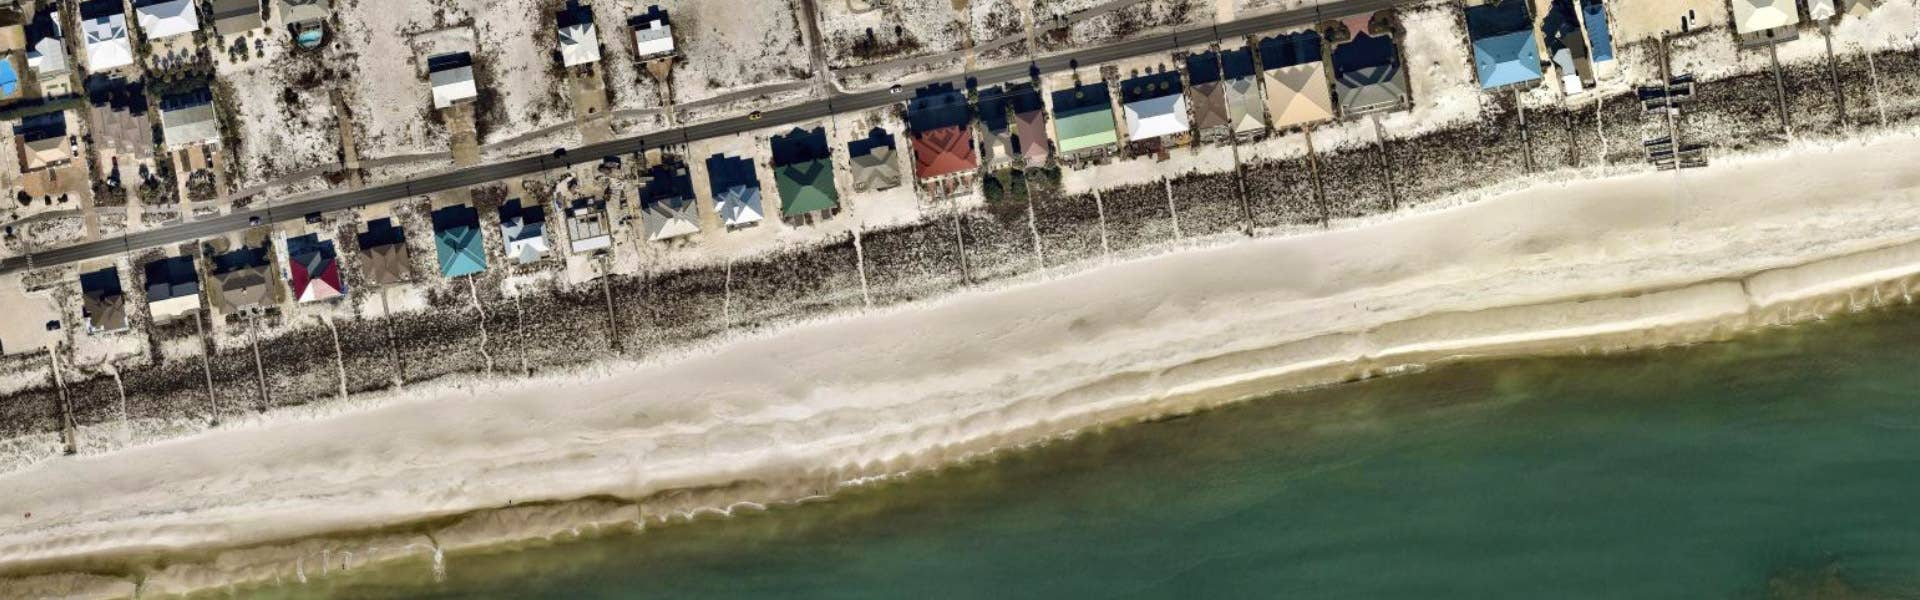 High-res aerial ortho image of beach in Navarre, FL - January 2019